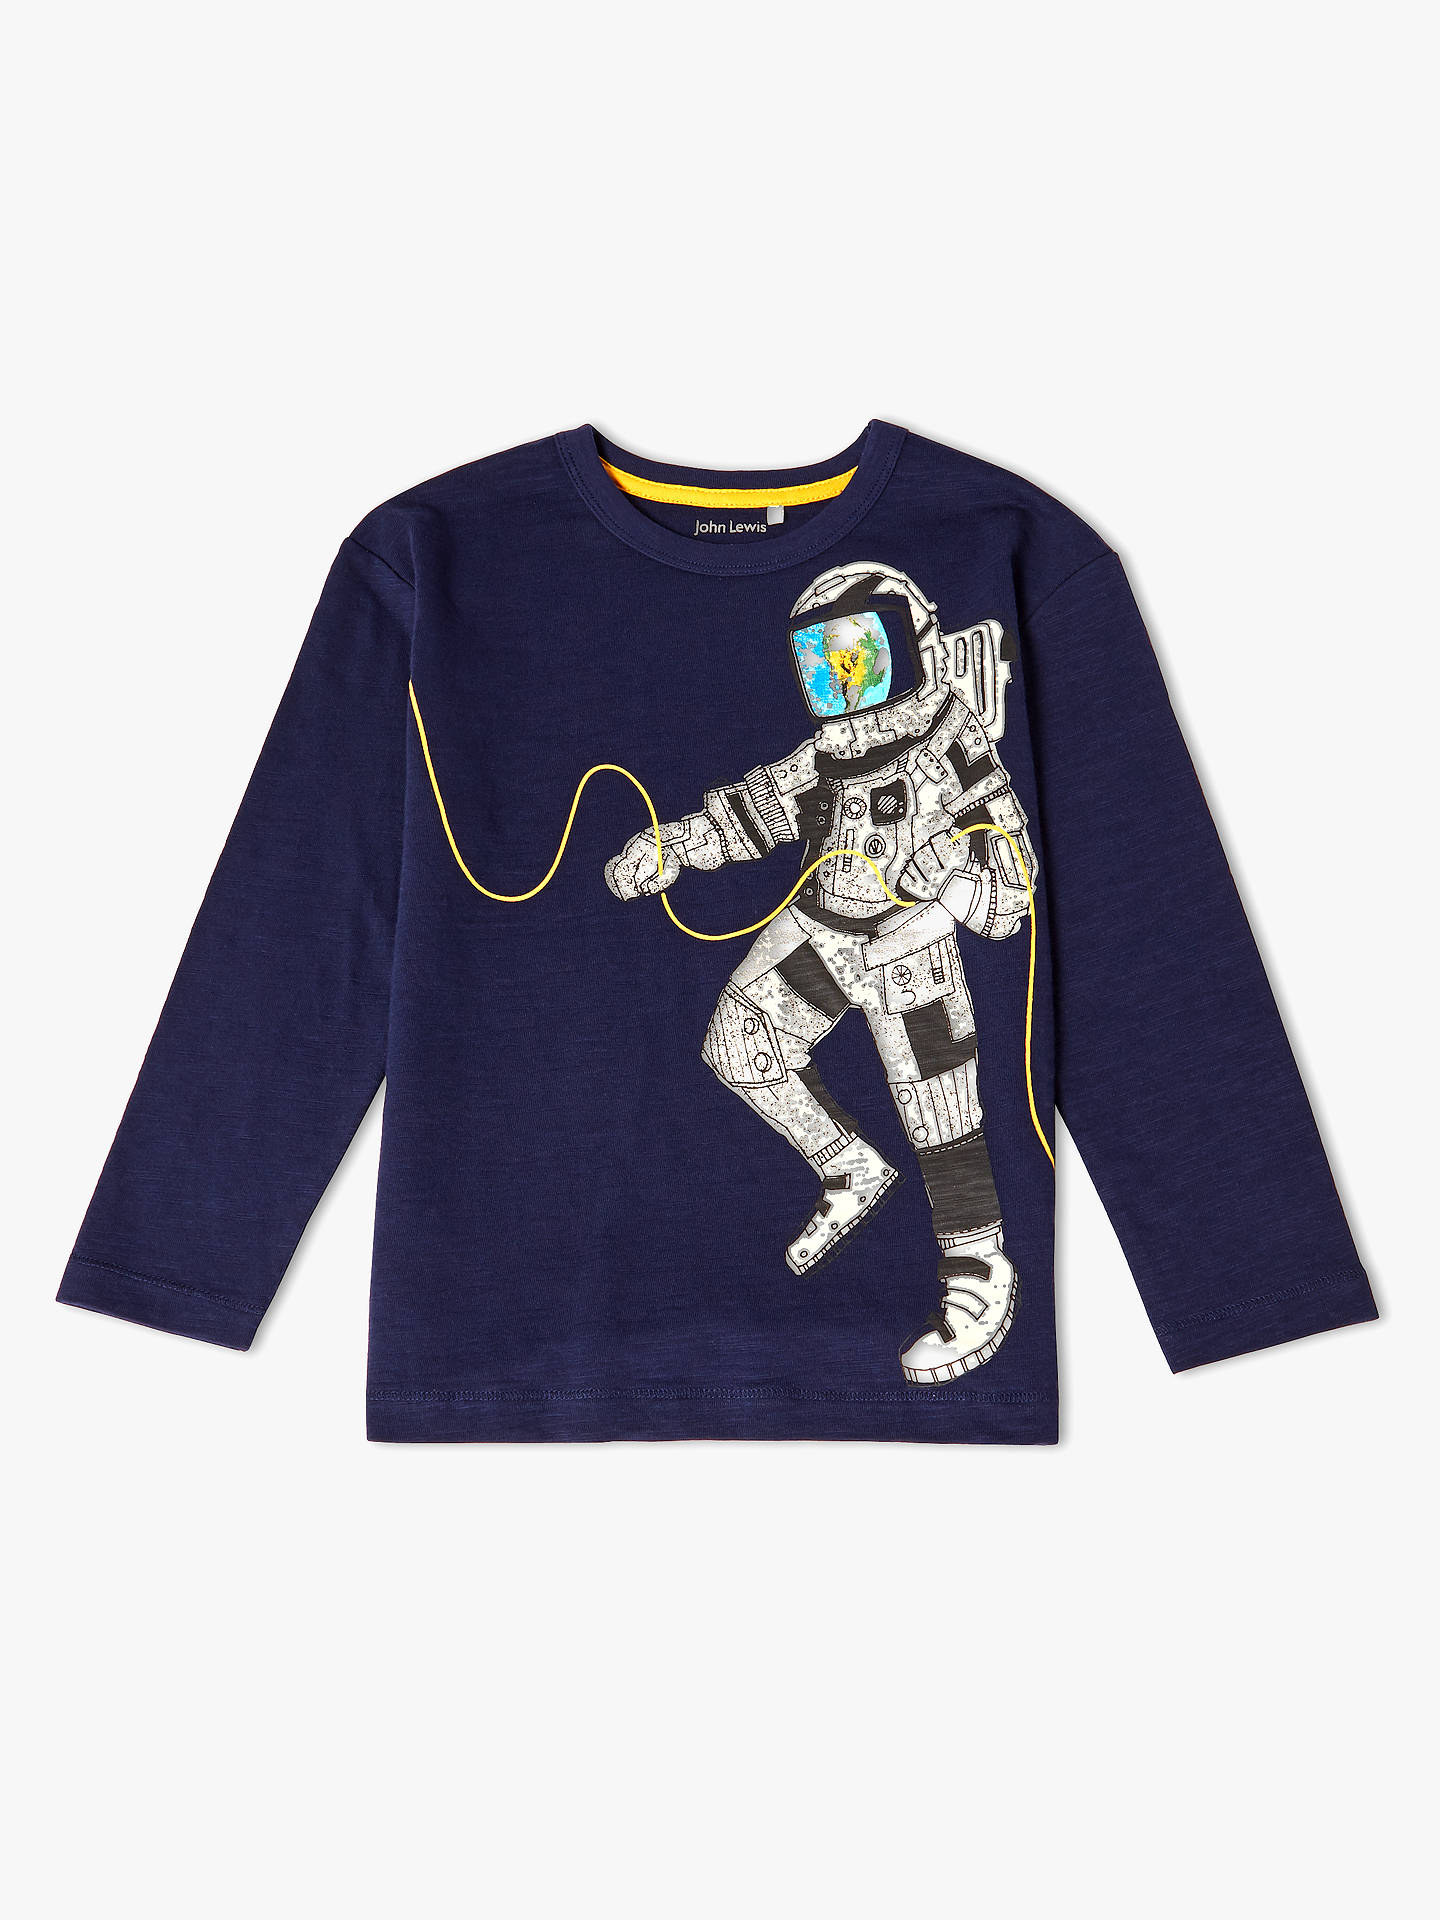 3b03c5f0d027 Buy John Lewis   Partners Boys  Astronaut Long Sleeve T-Shirt